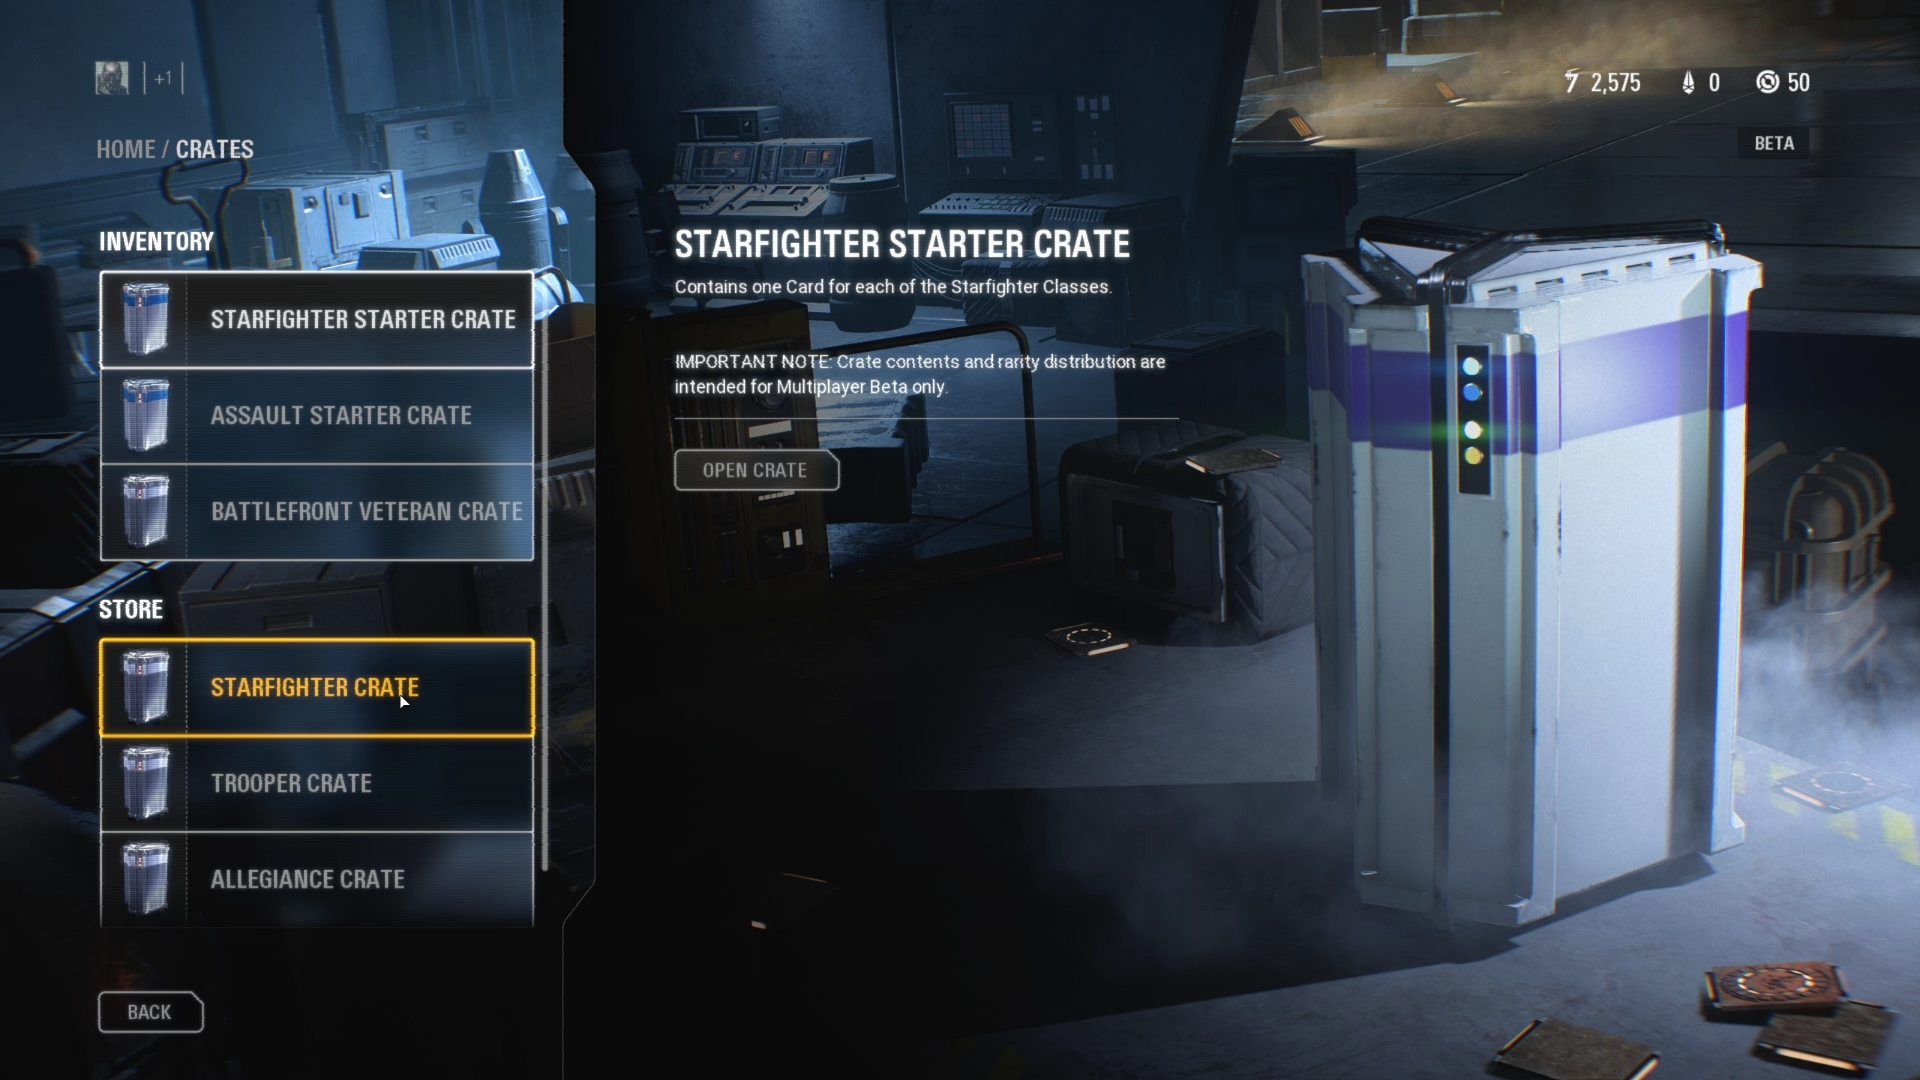 DICE addresses Star Wars: Battlefront II loot box concerns